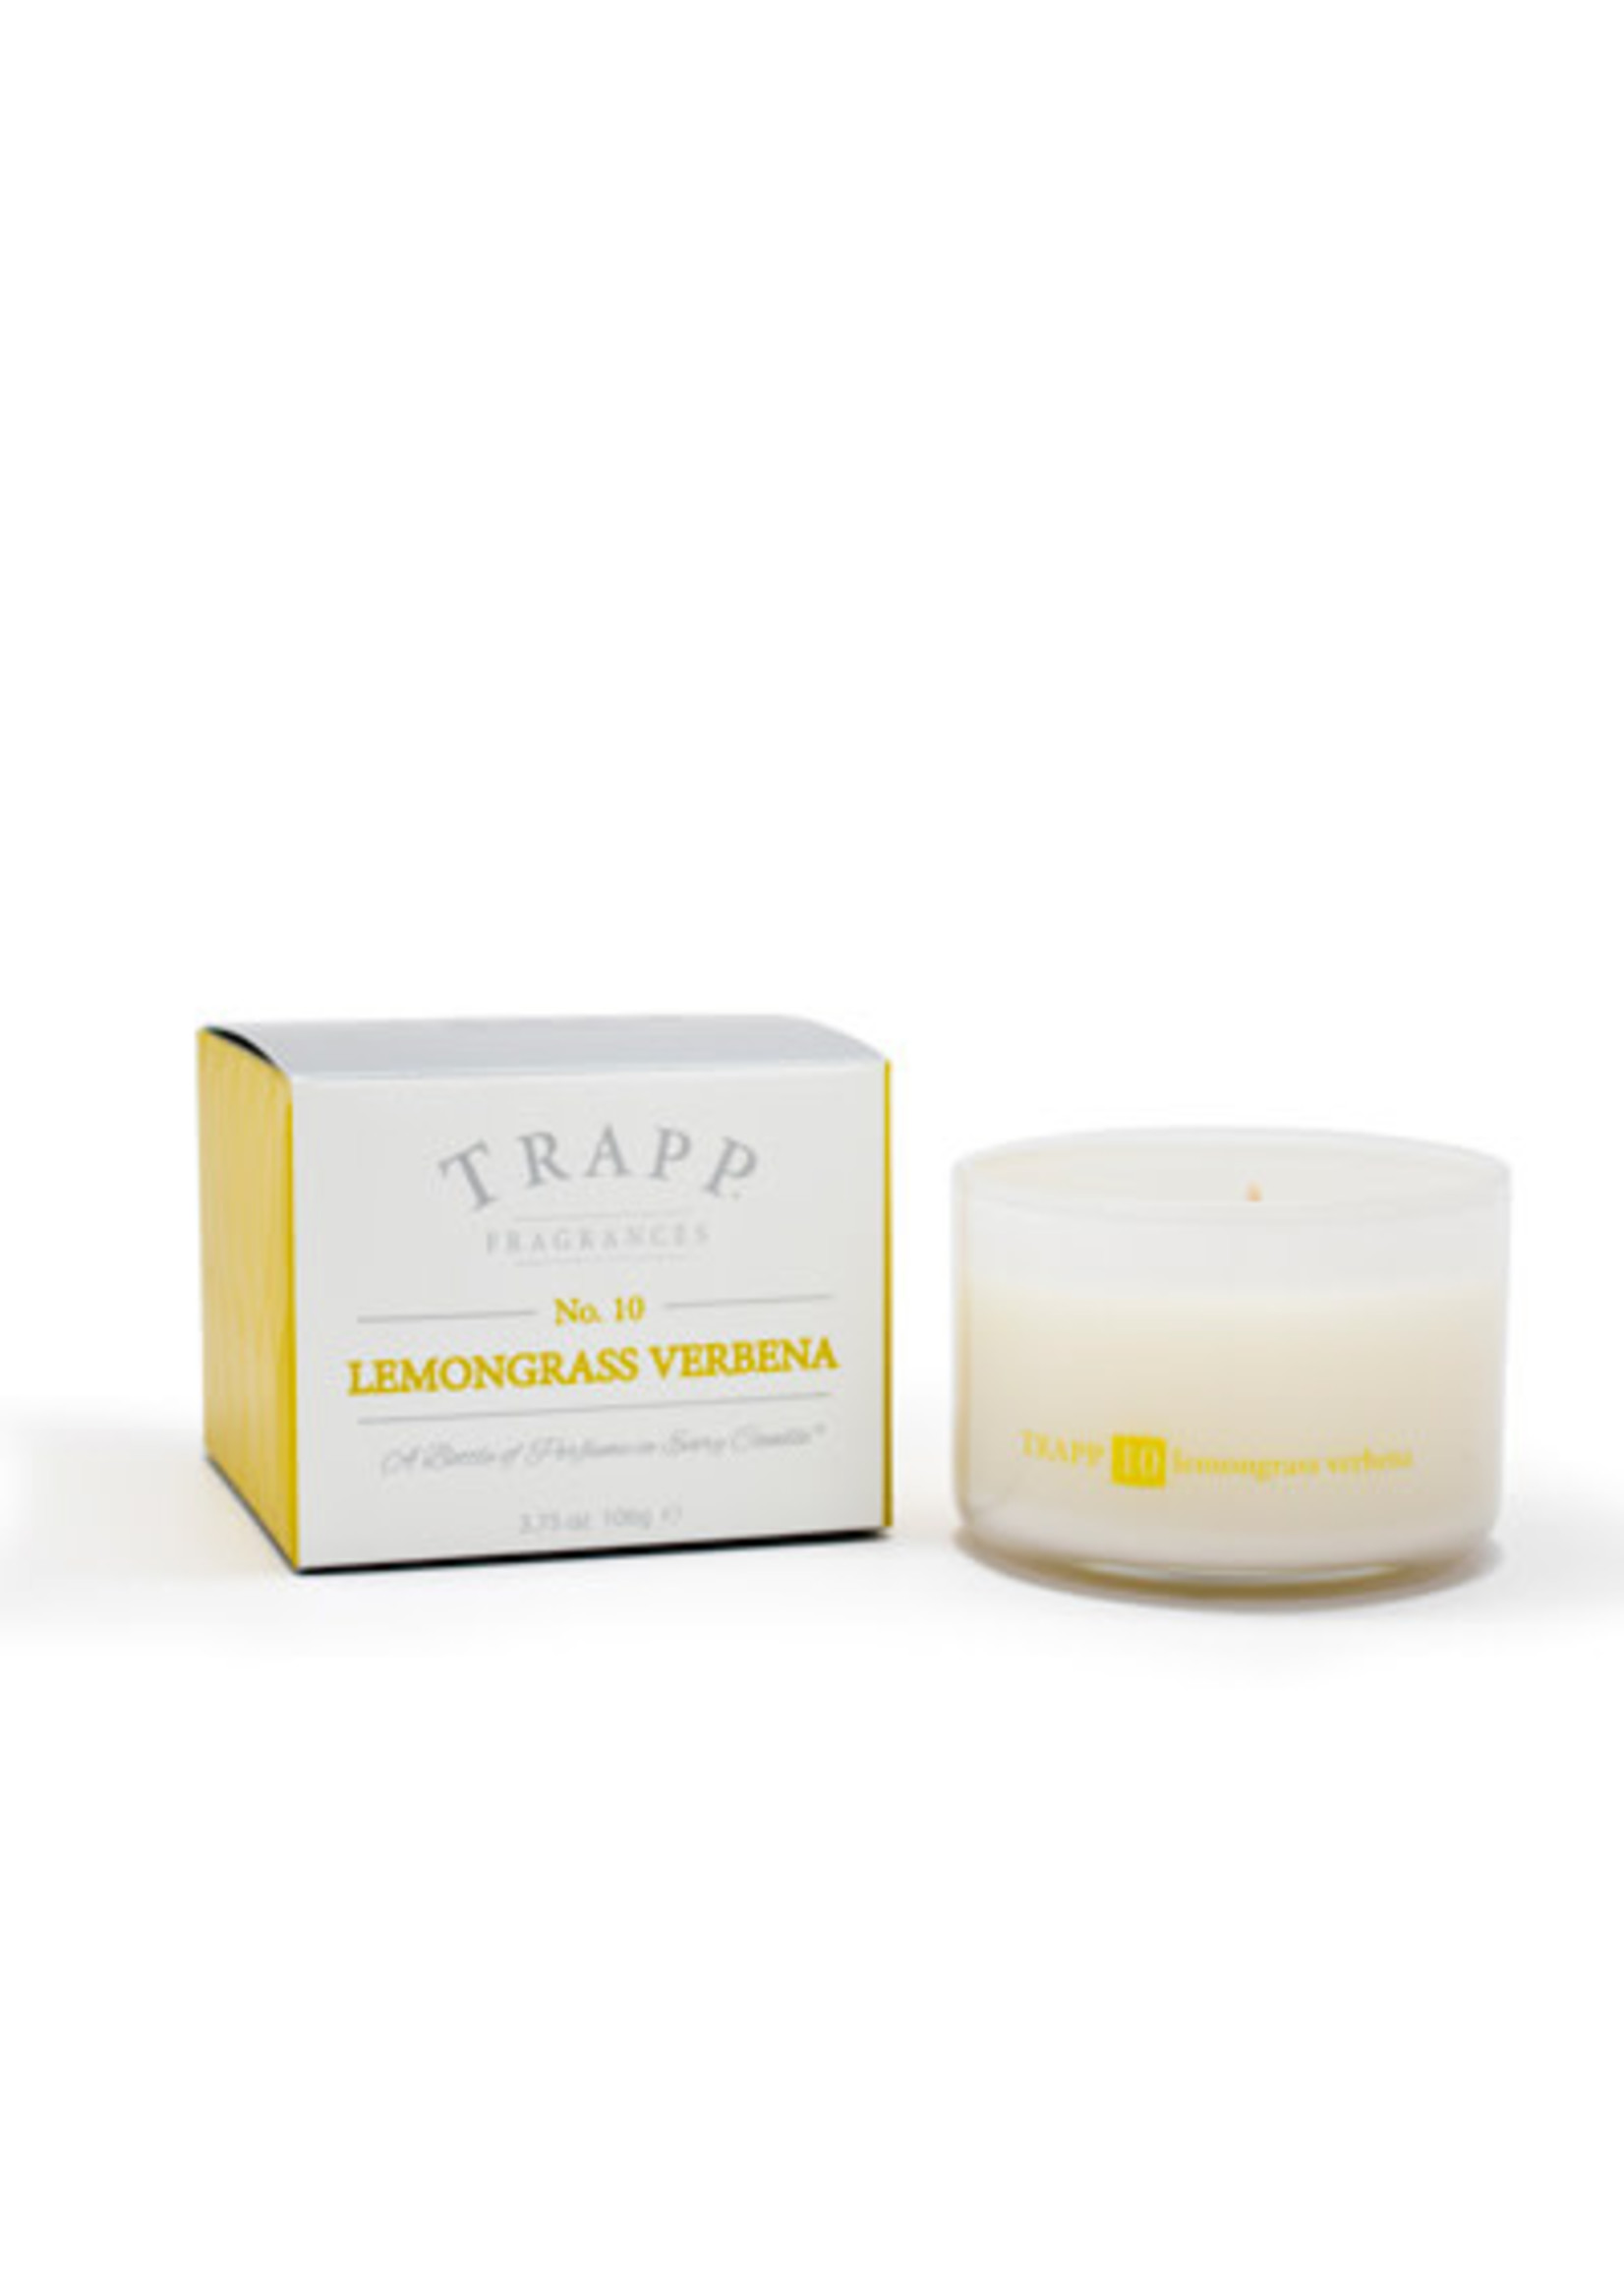 Trapp Candles Ambiance Collection - No. 10 Lemongrass Verbena - 3.75 oz. Poured Candle